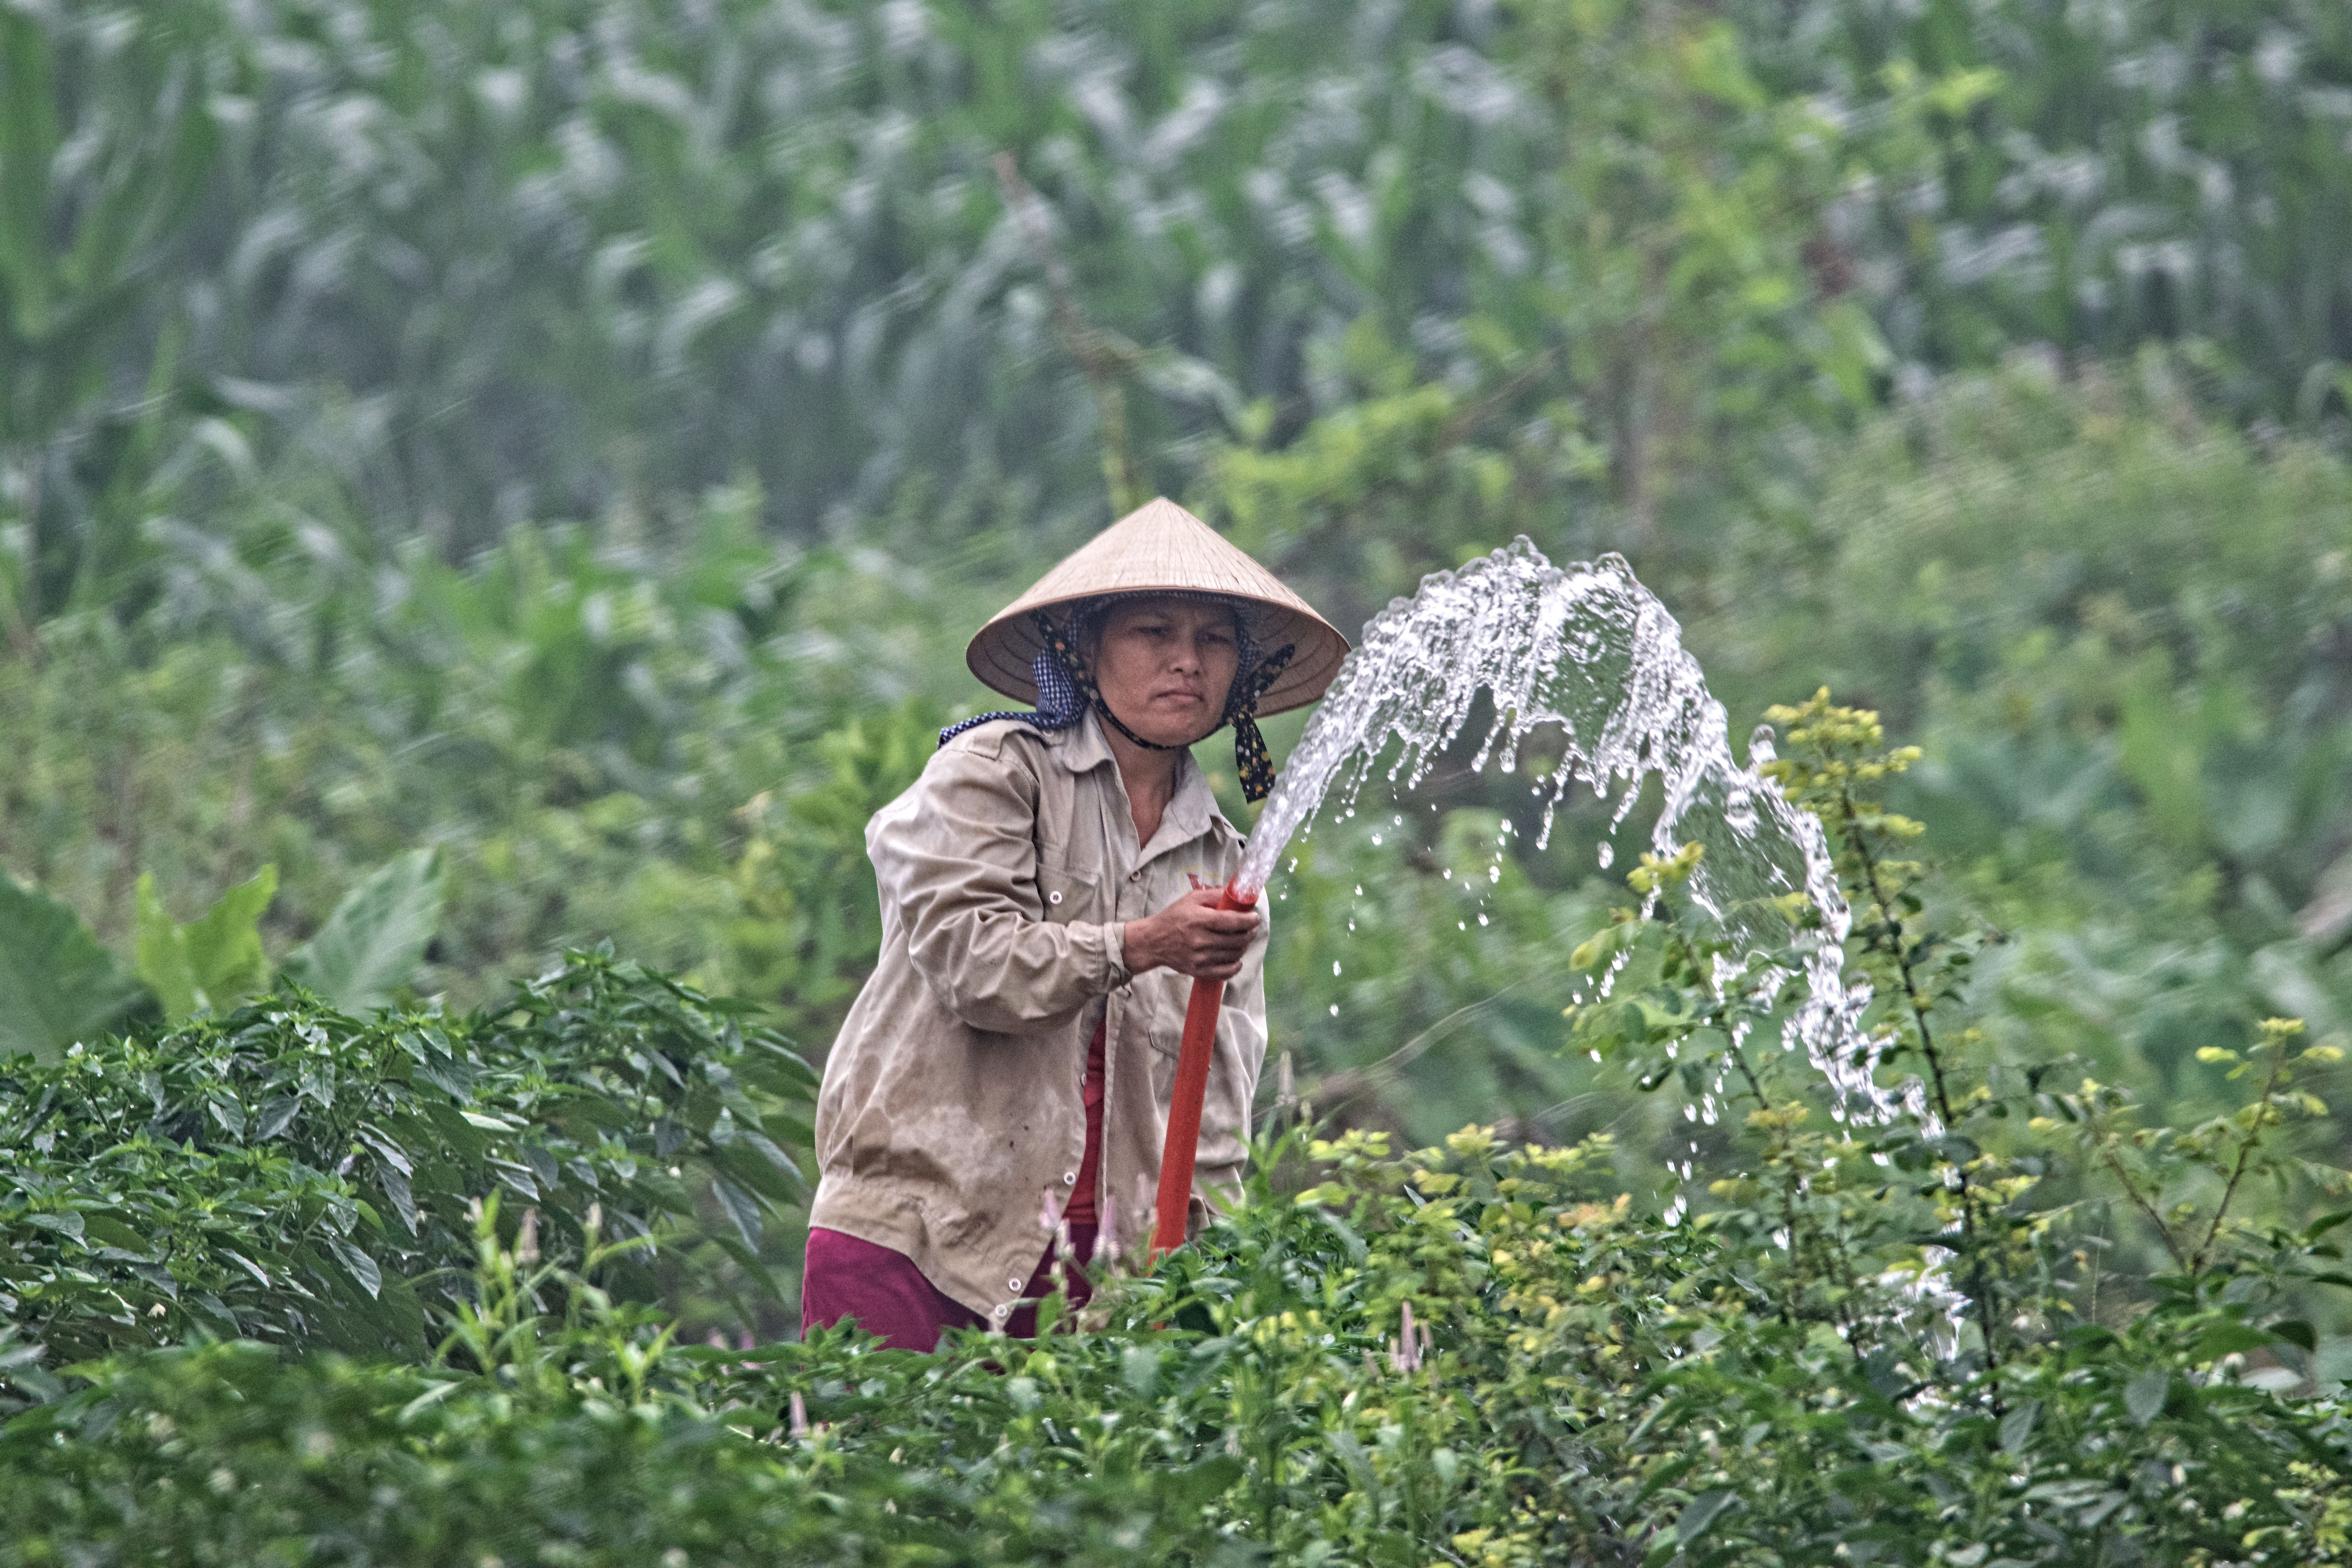 woman watering plants during daytime